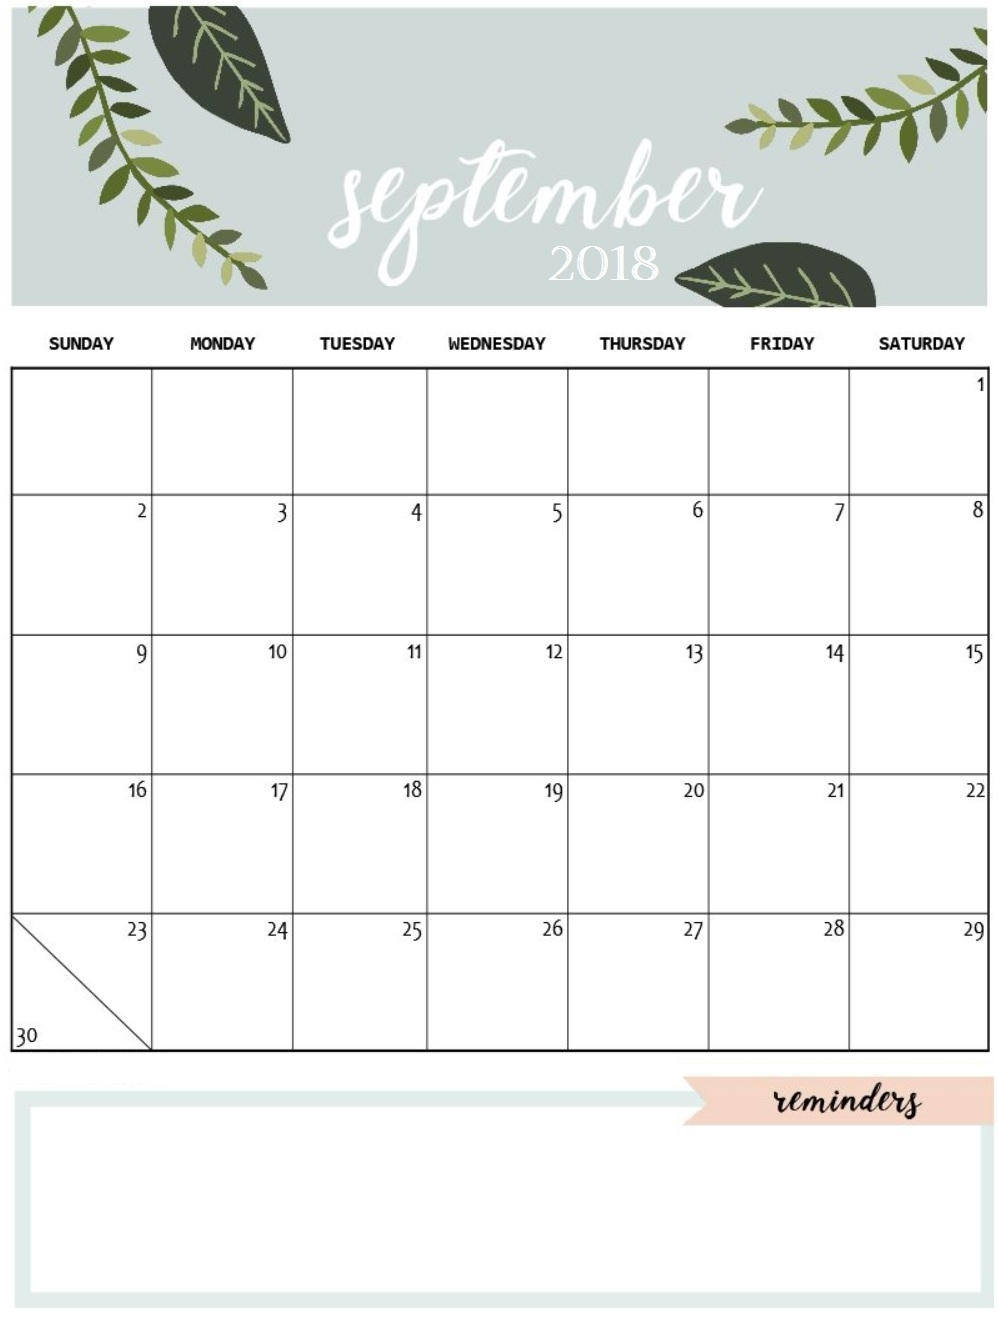 september 2018 calendar cute month printable calendar Cute Free Monthly Printable Calendar 2018 erdferdf